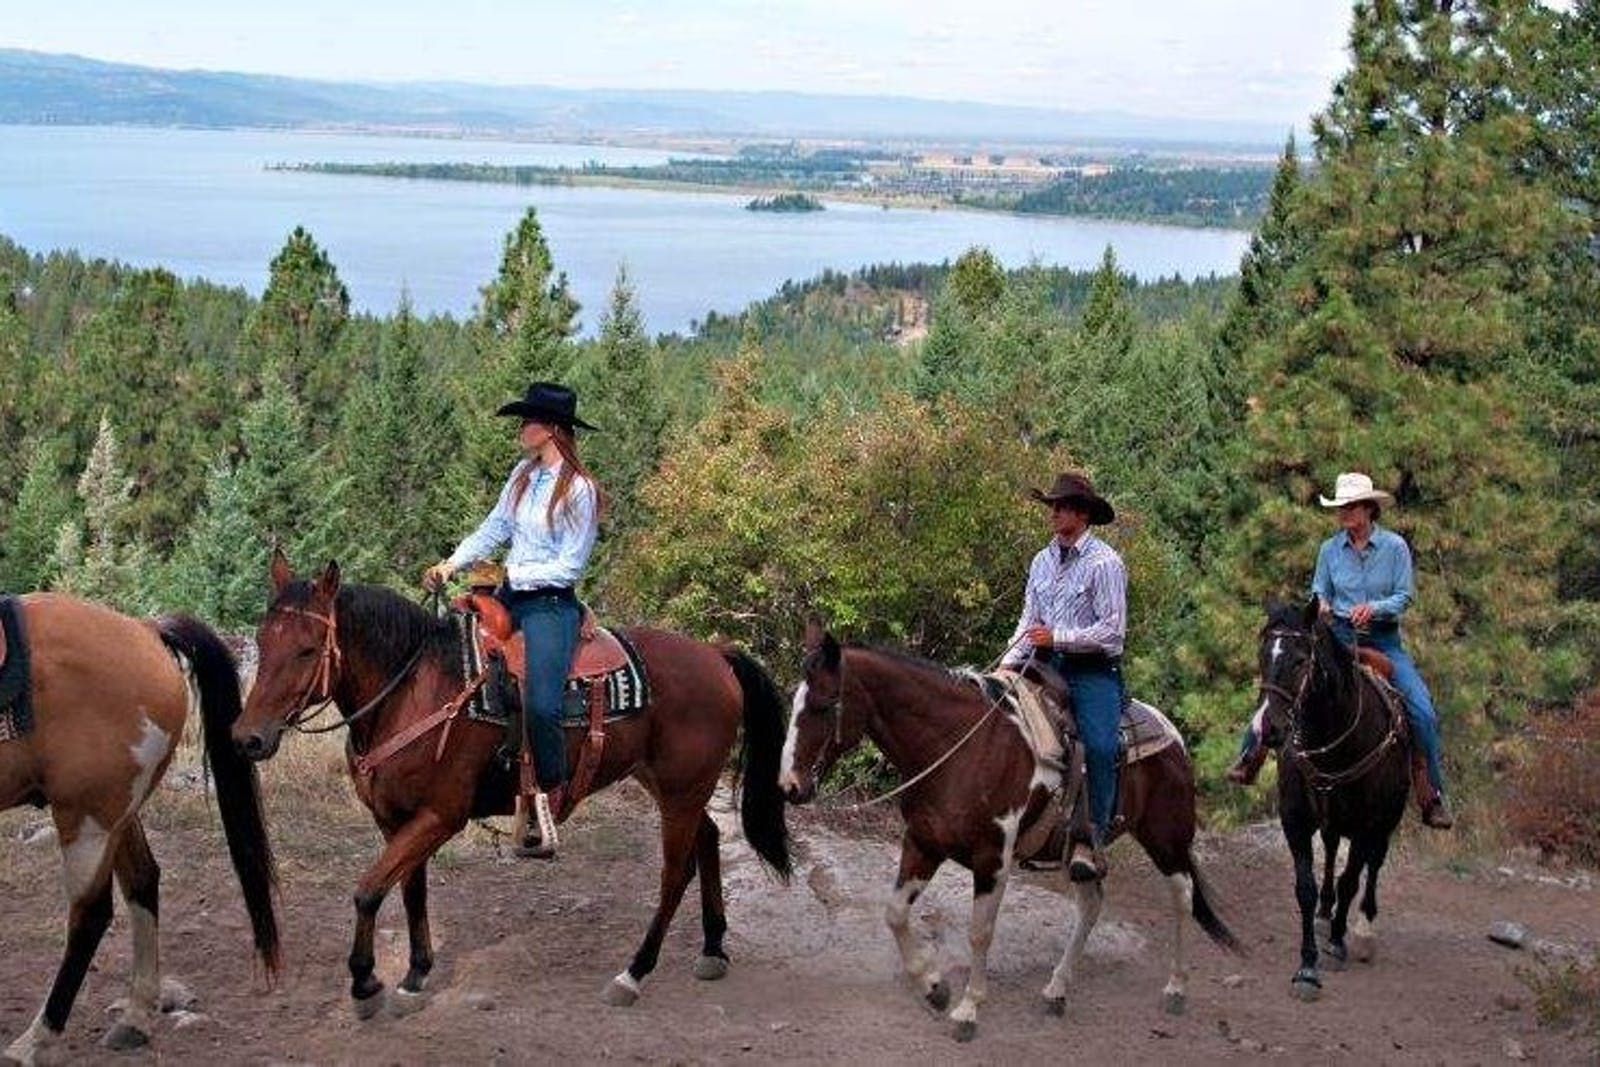 Horse Riding in The Hills at Flathead Lake Lodge, Montana